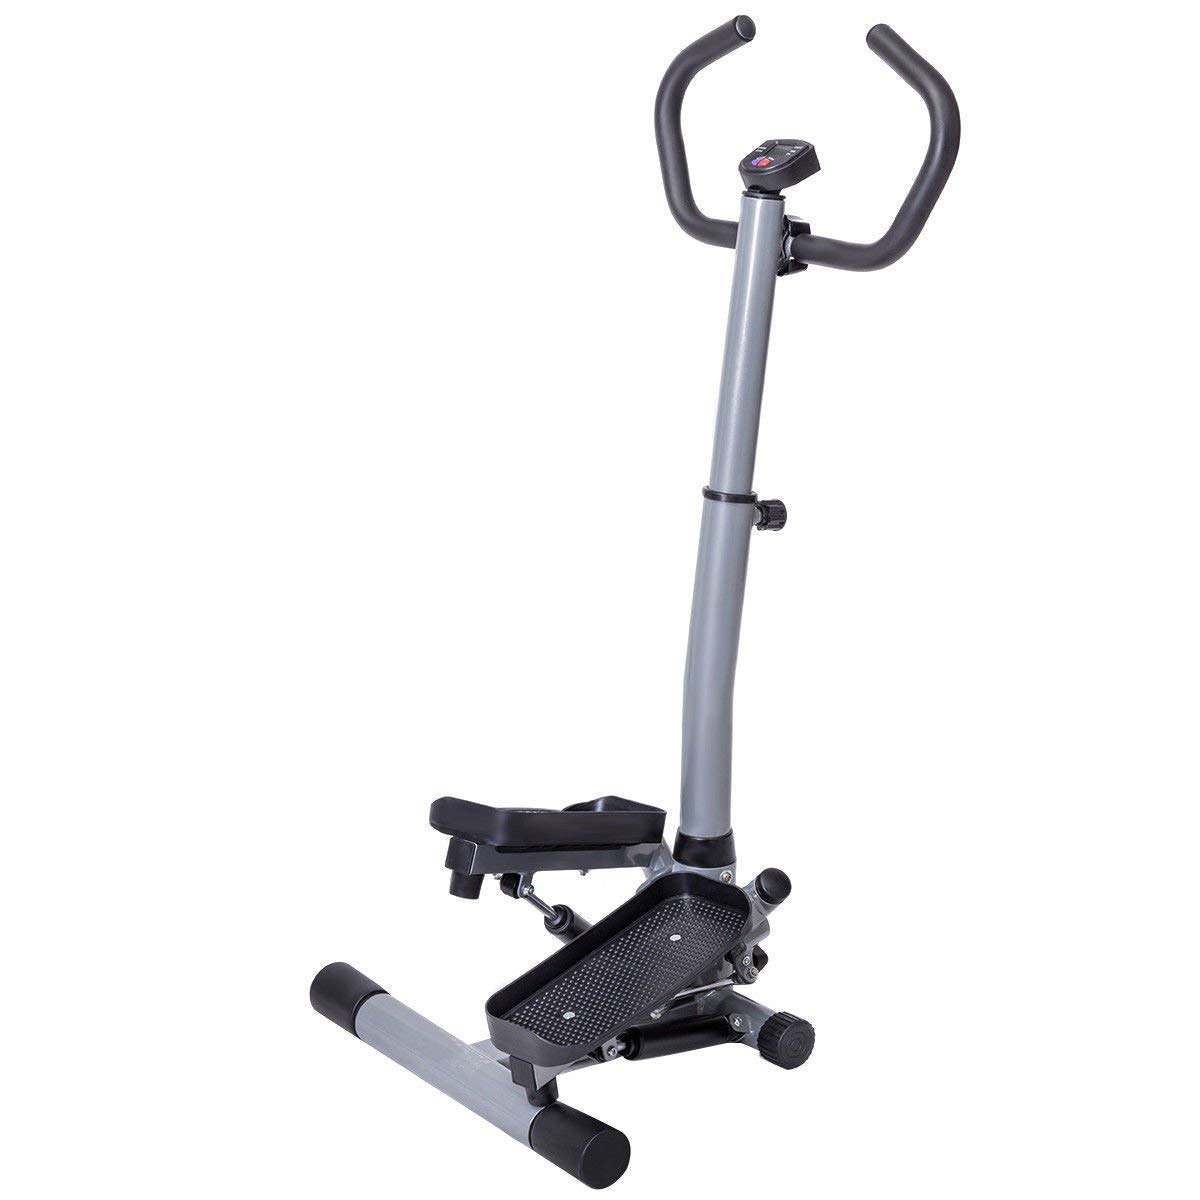 GYMAX Step Machine, 2 in 1 Twister Stepper Stair Climber with LCD Display and Handle Bar, for Fitness Cardio Exercise Workout by GYMAX (Image #1)